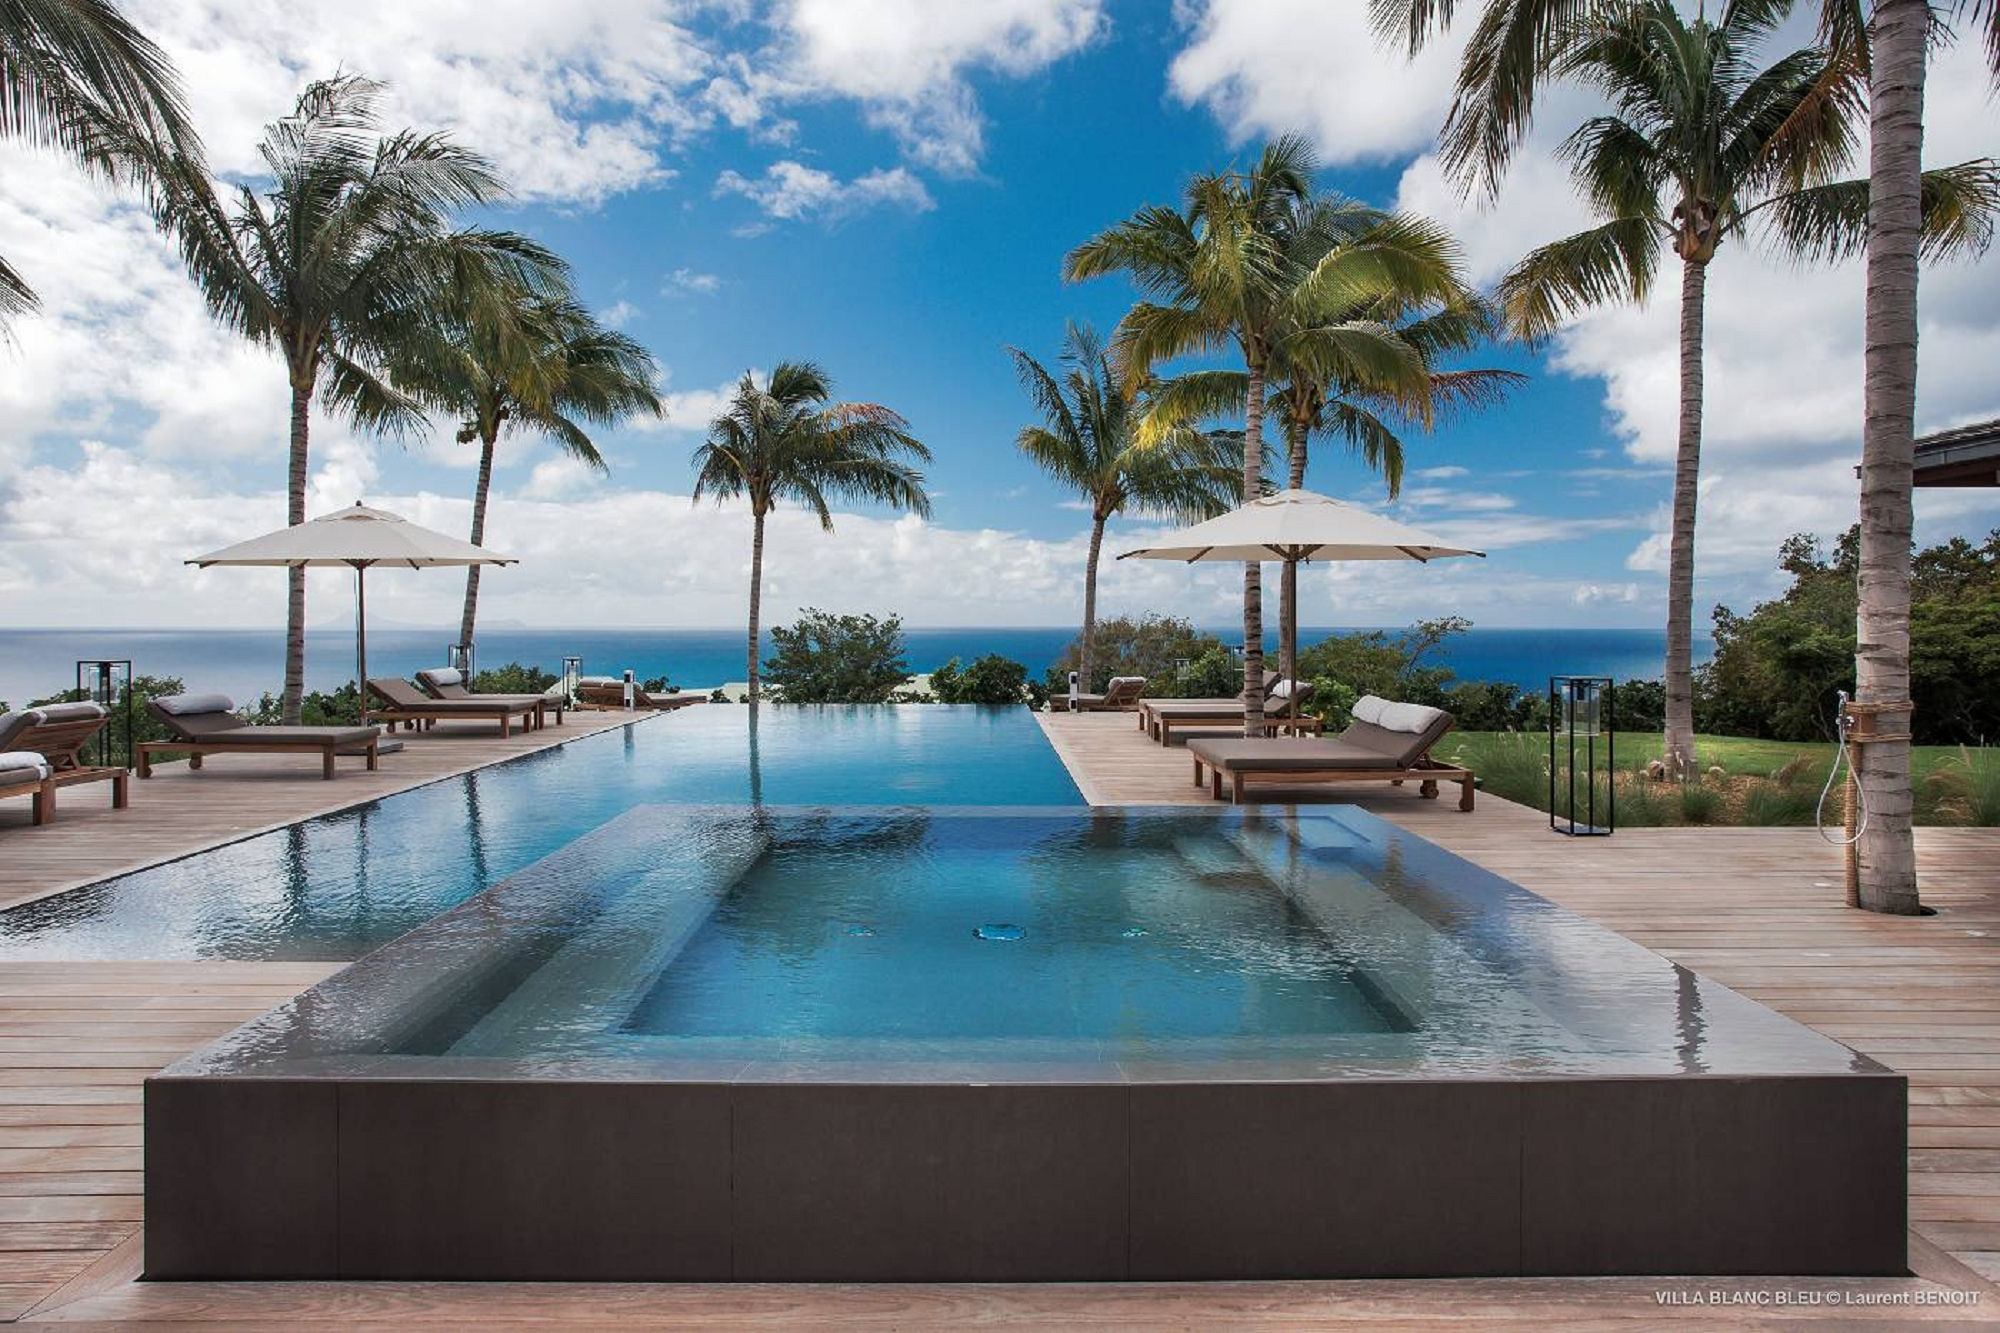 For super rich ultra luxury real estate properties homes, most expensive houses, rent unique penthouse apartment and ultimate villa in St Barth - Gouverneur St Barth St. Barthélemy for rent holiday